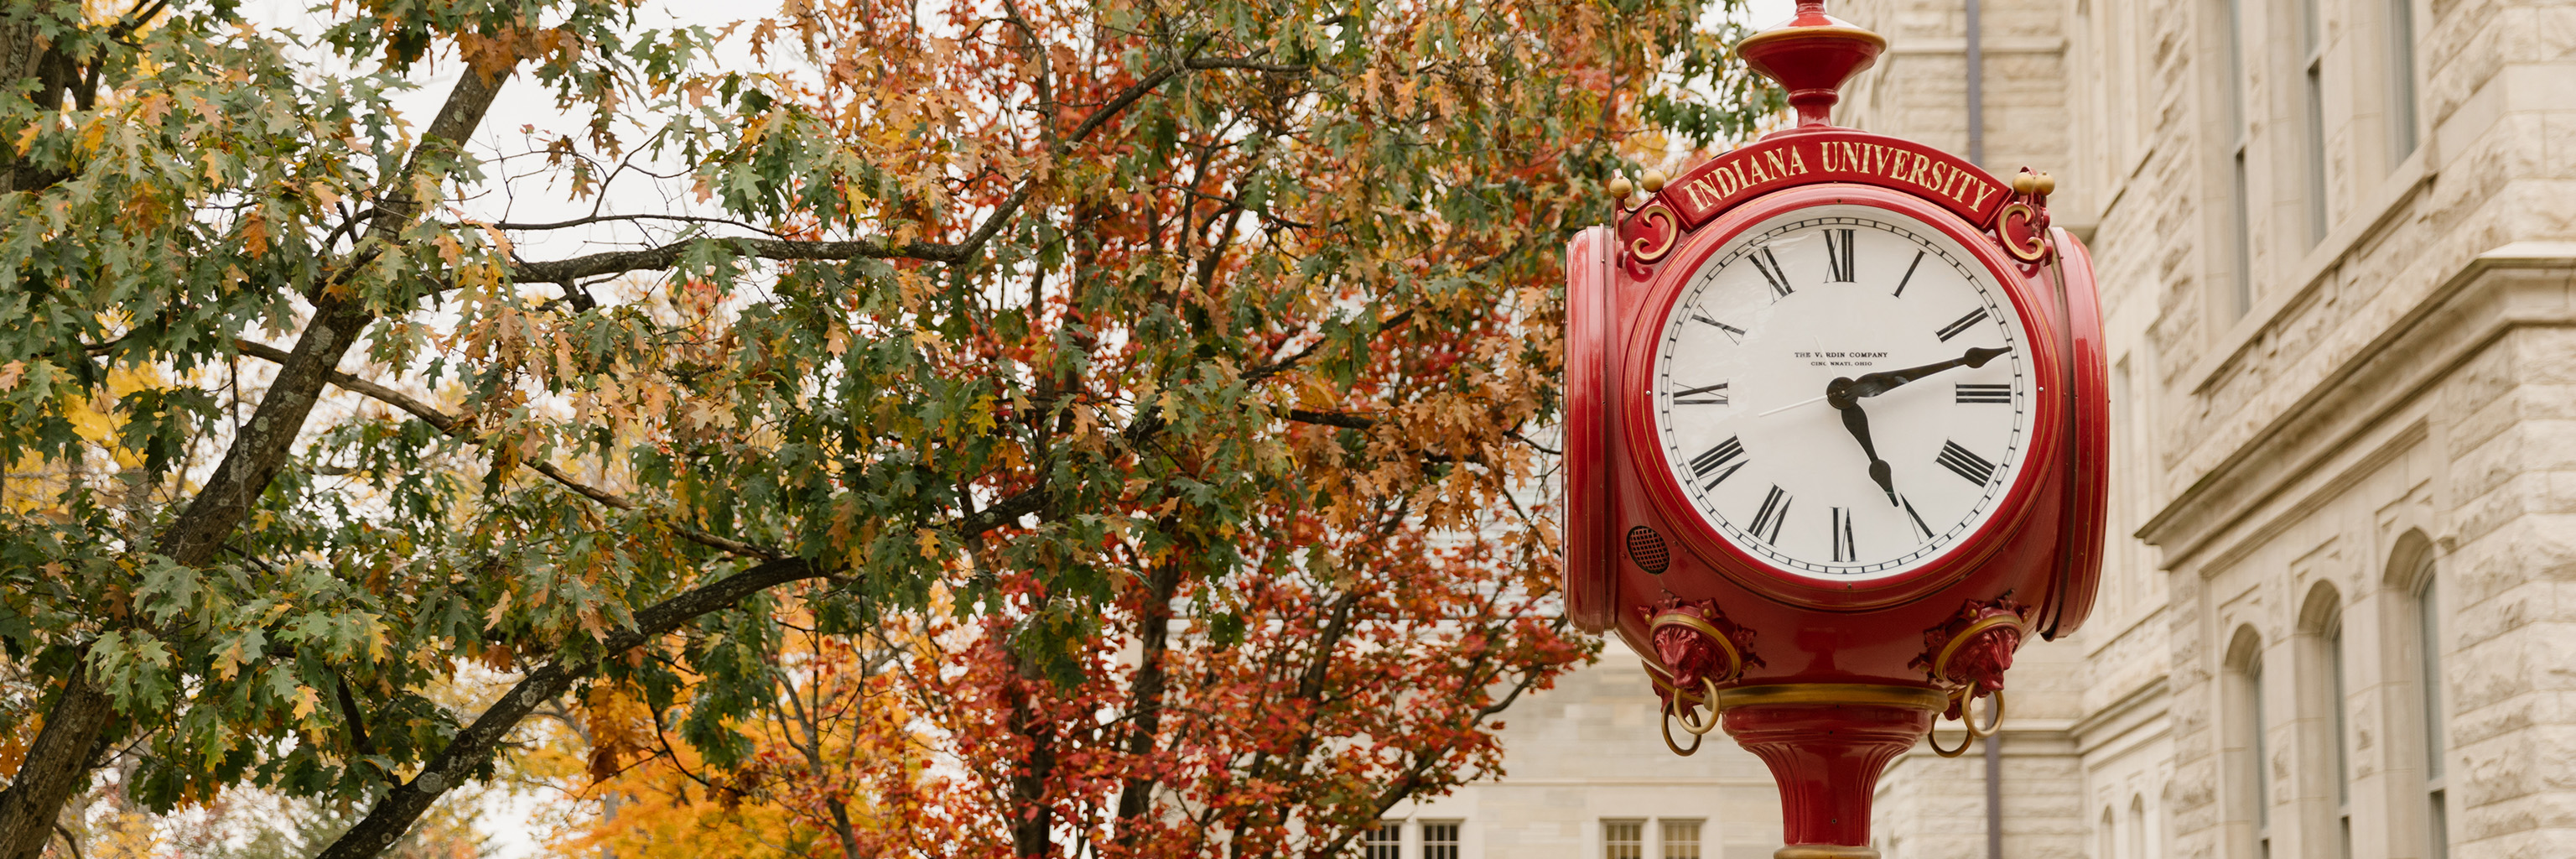 Red Indiana University street post clock